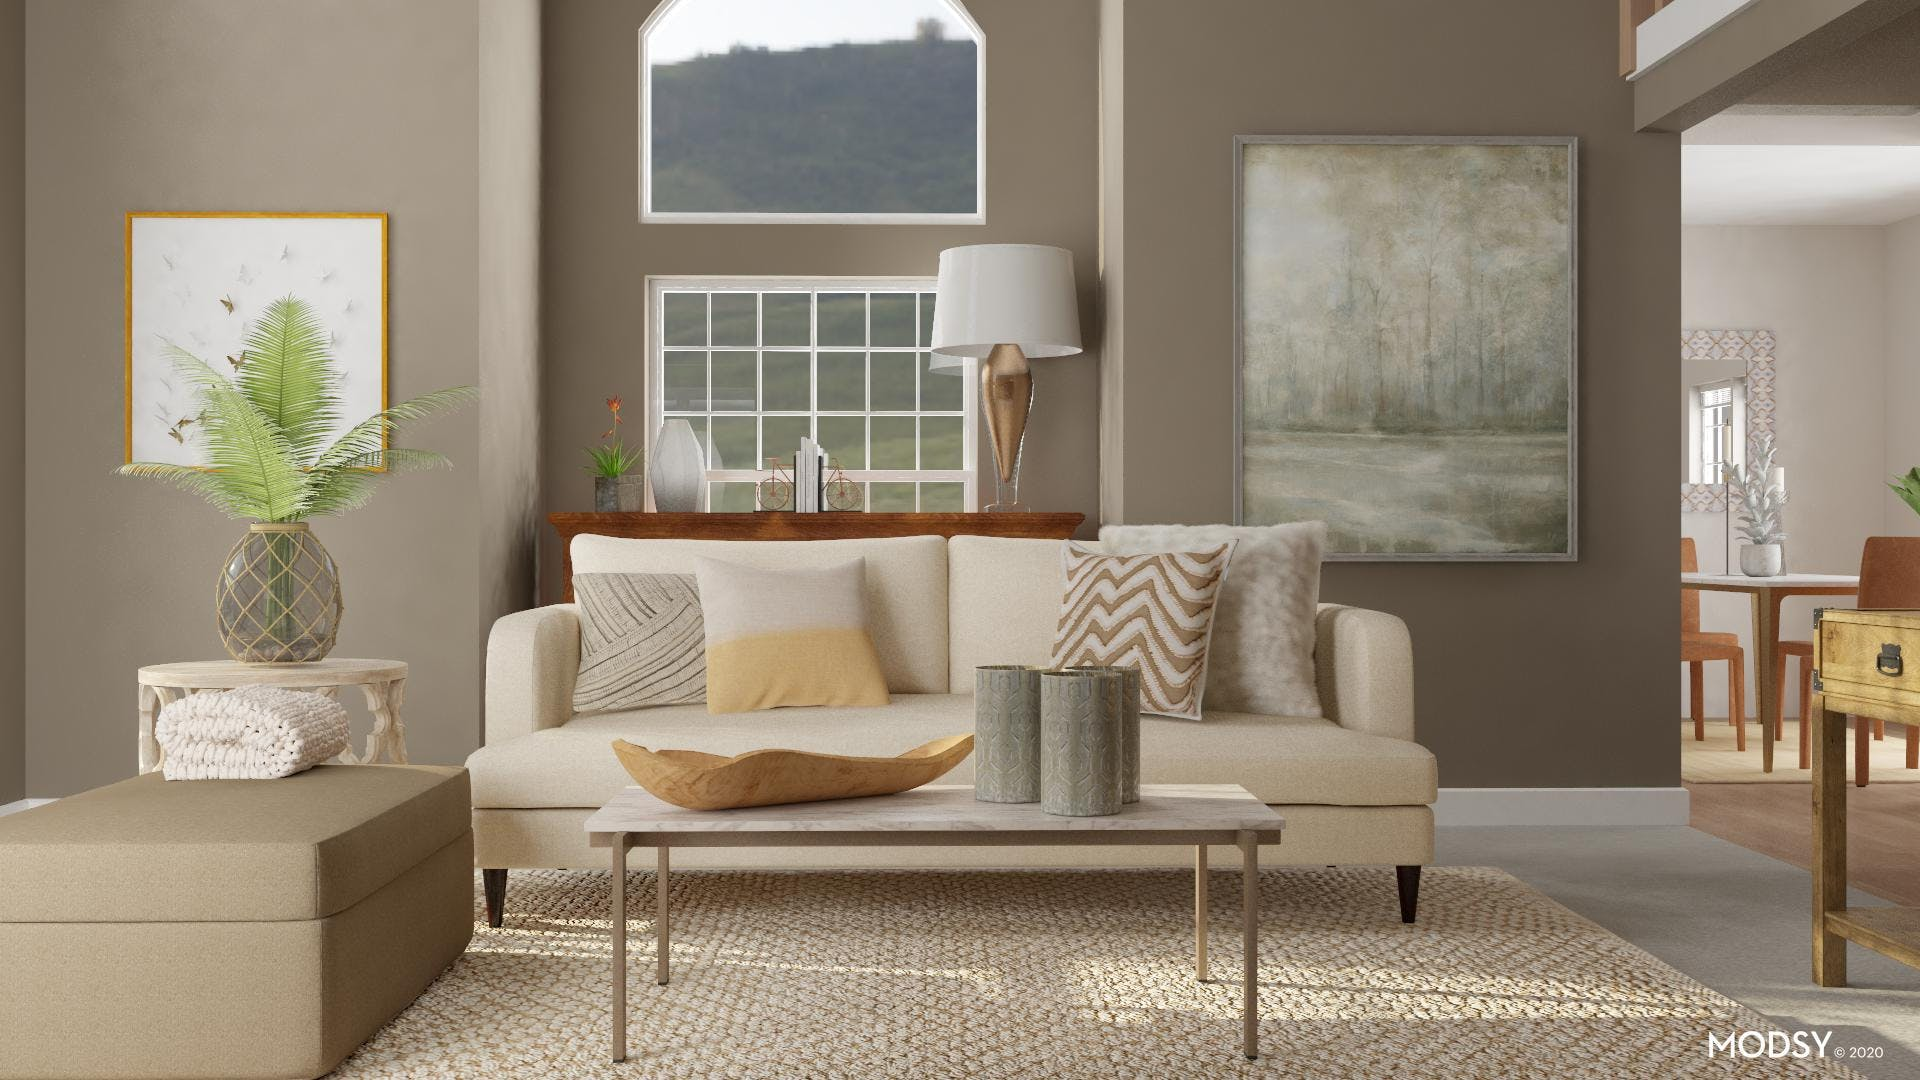 Transitional Living Room in Earth Tones